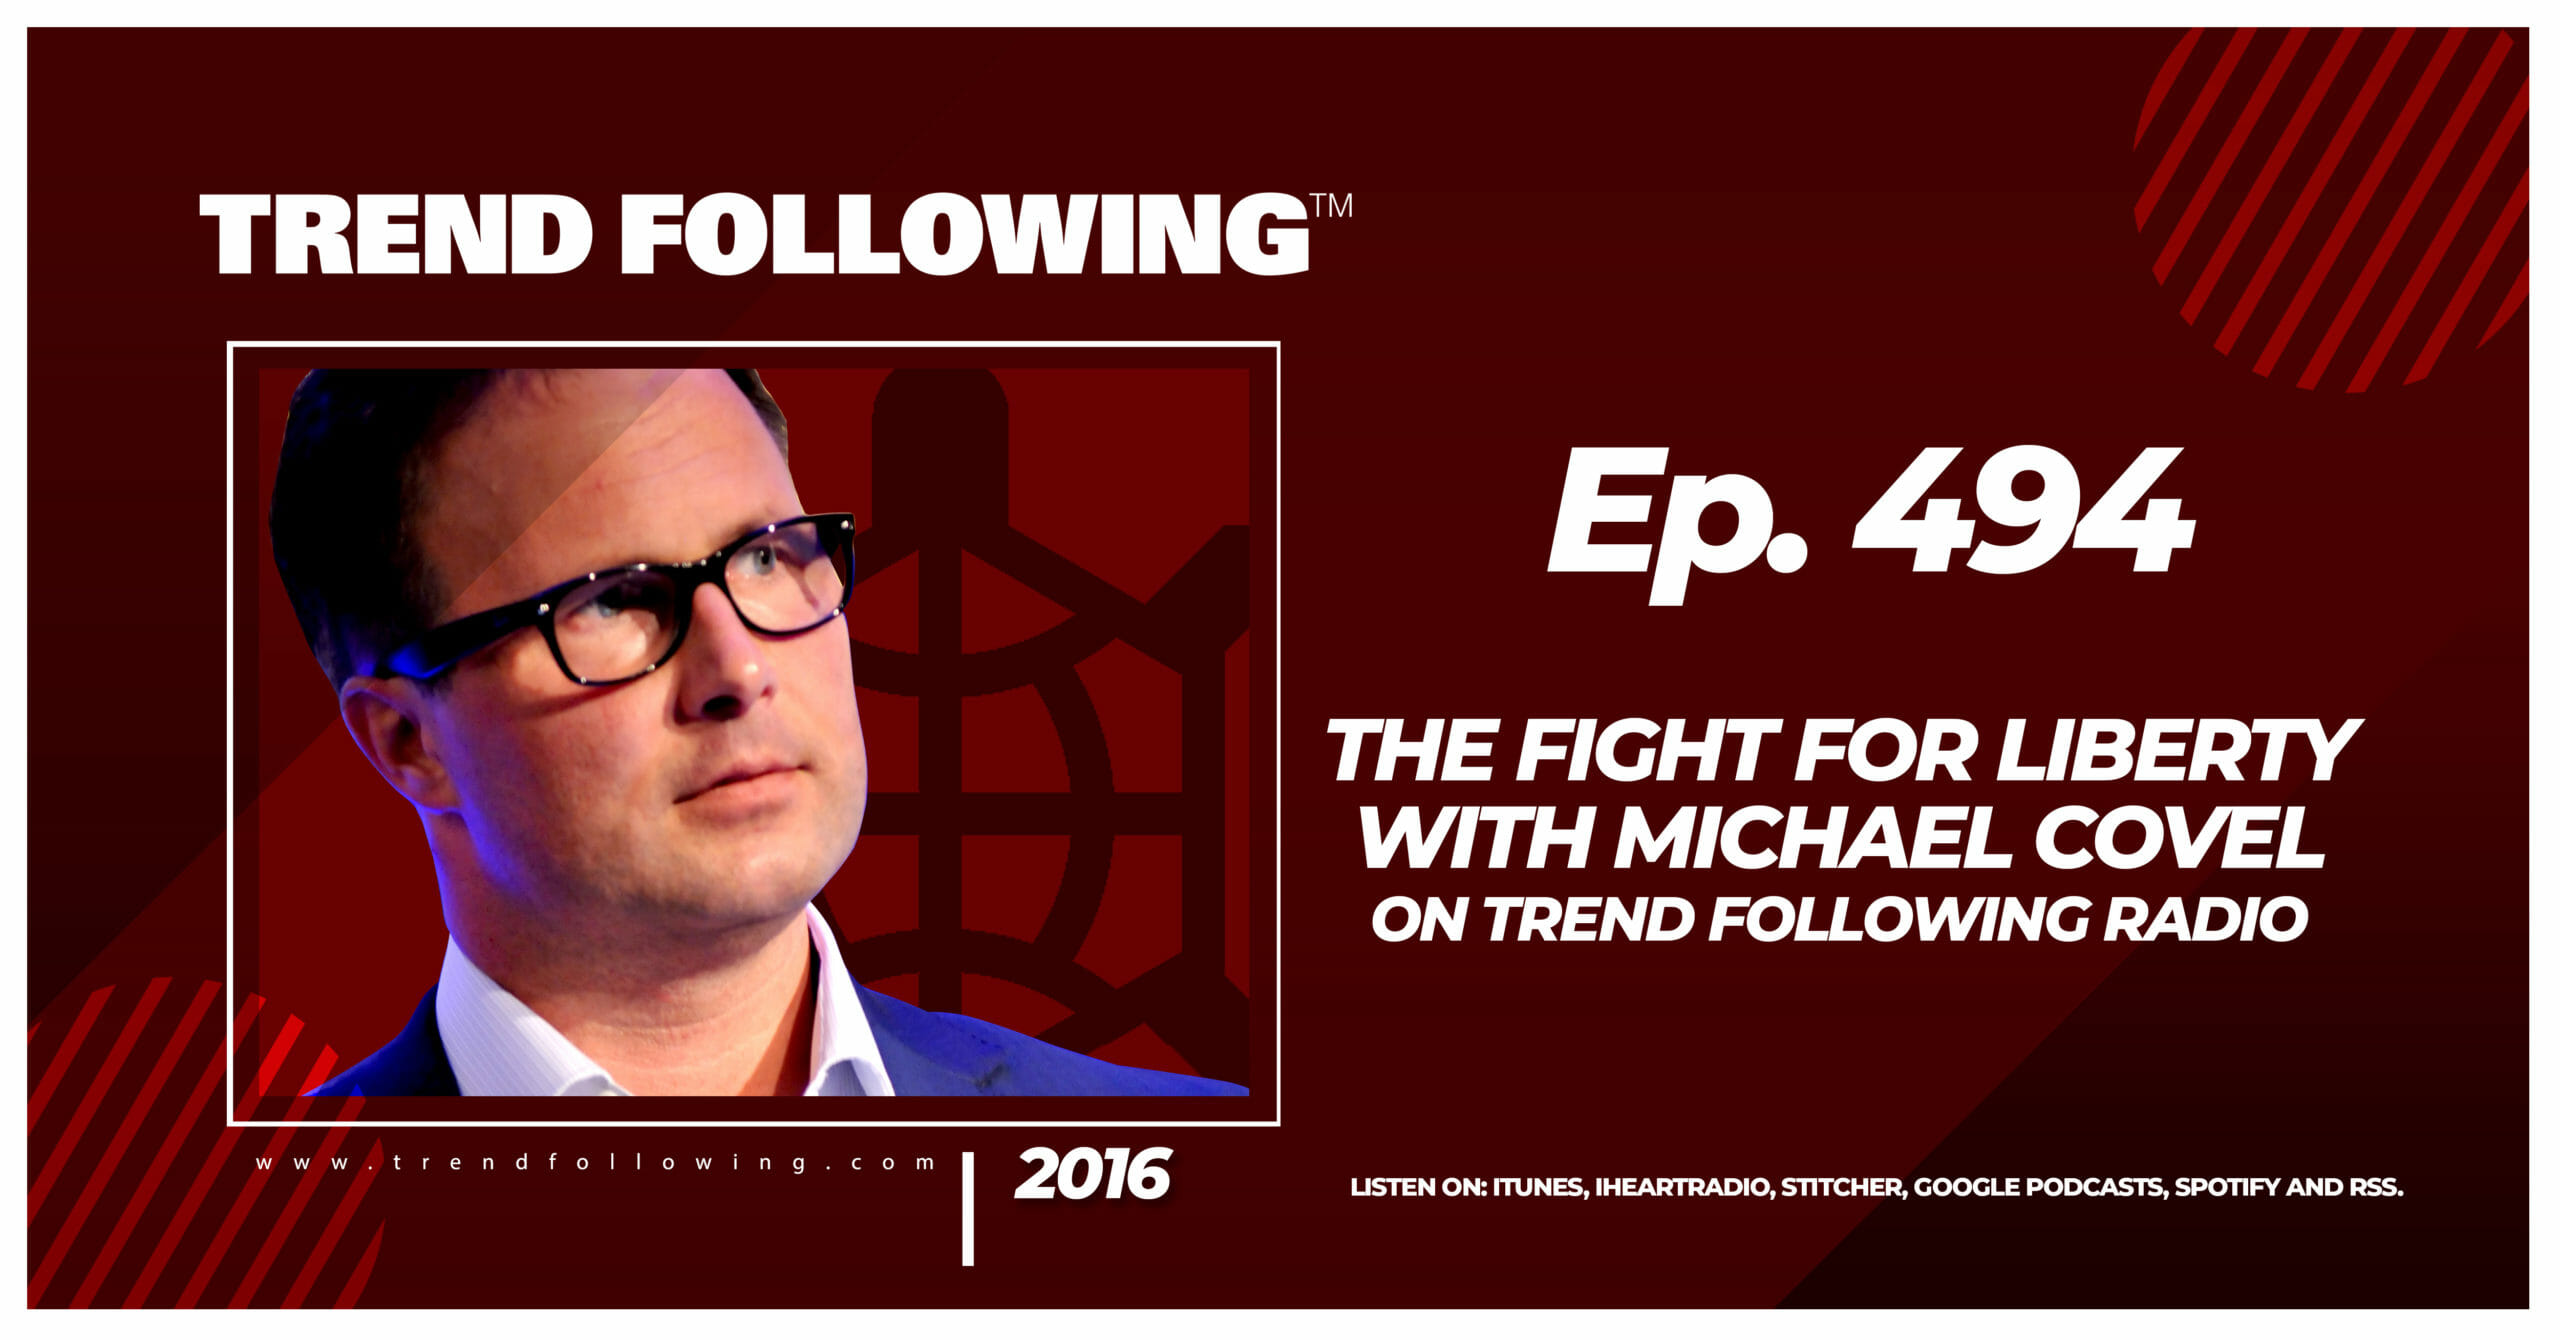 The Fight for Liberty with Michael Covel on Trend Following Radio